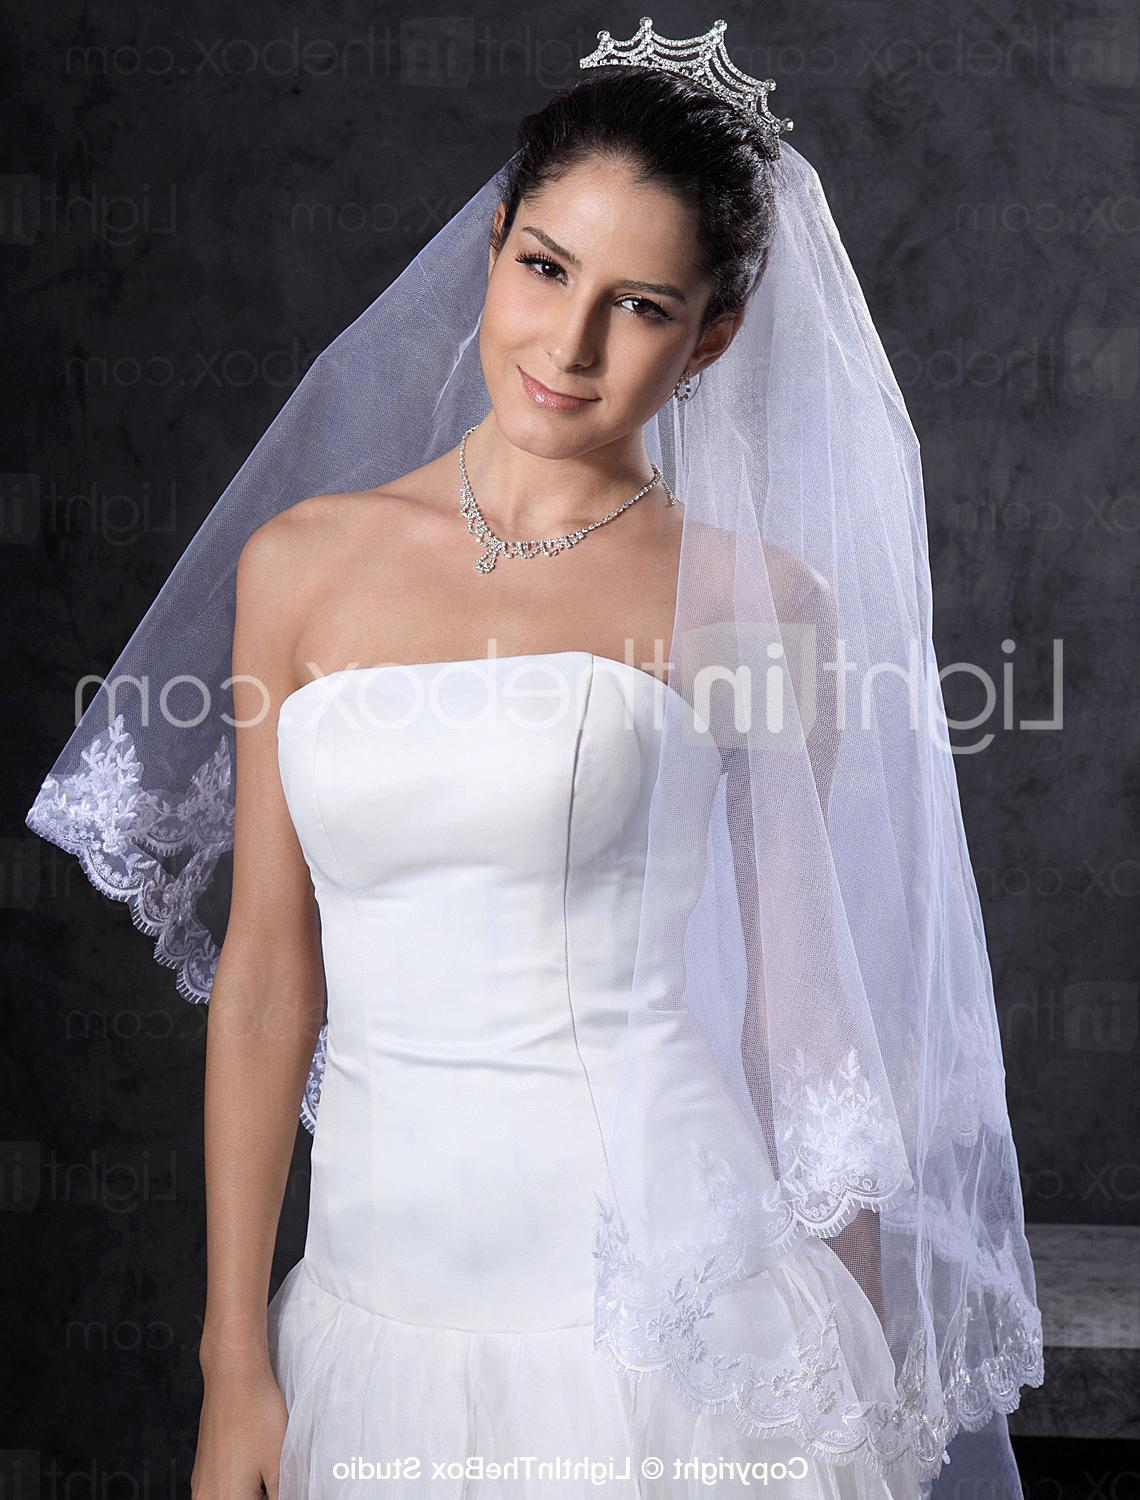 Wedding Veil - US  15.79